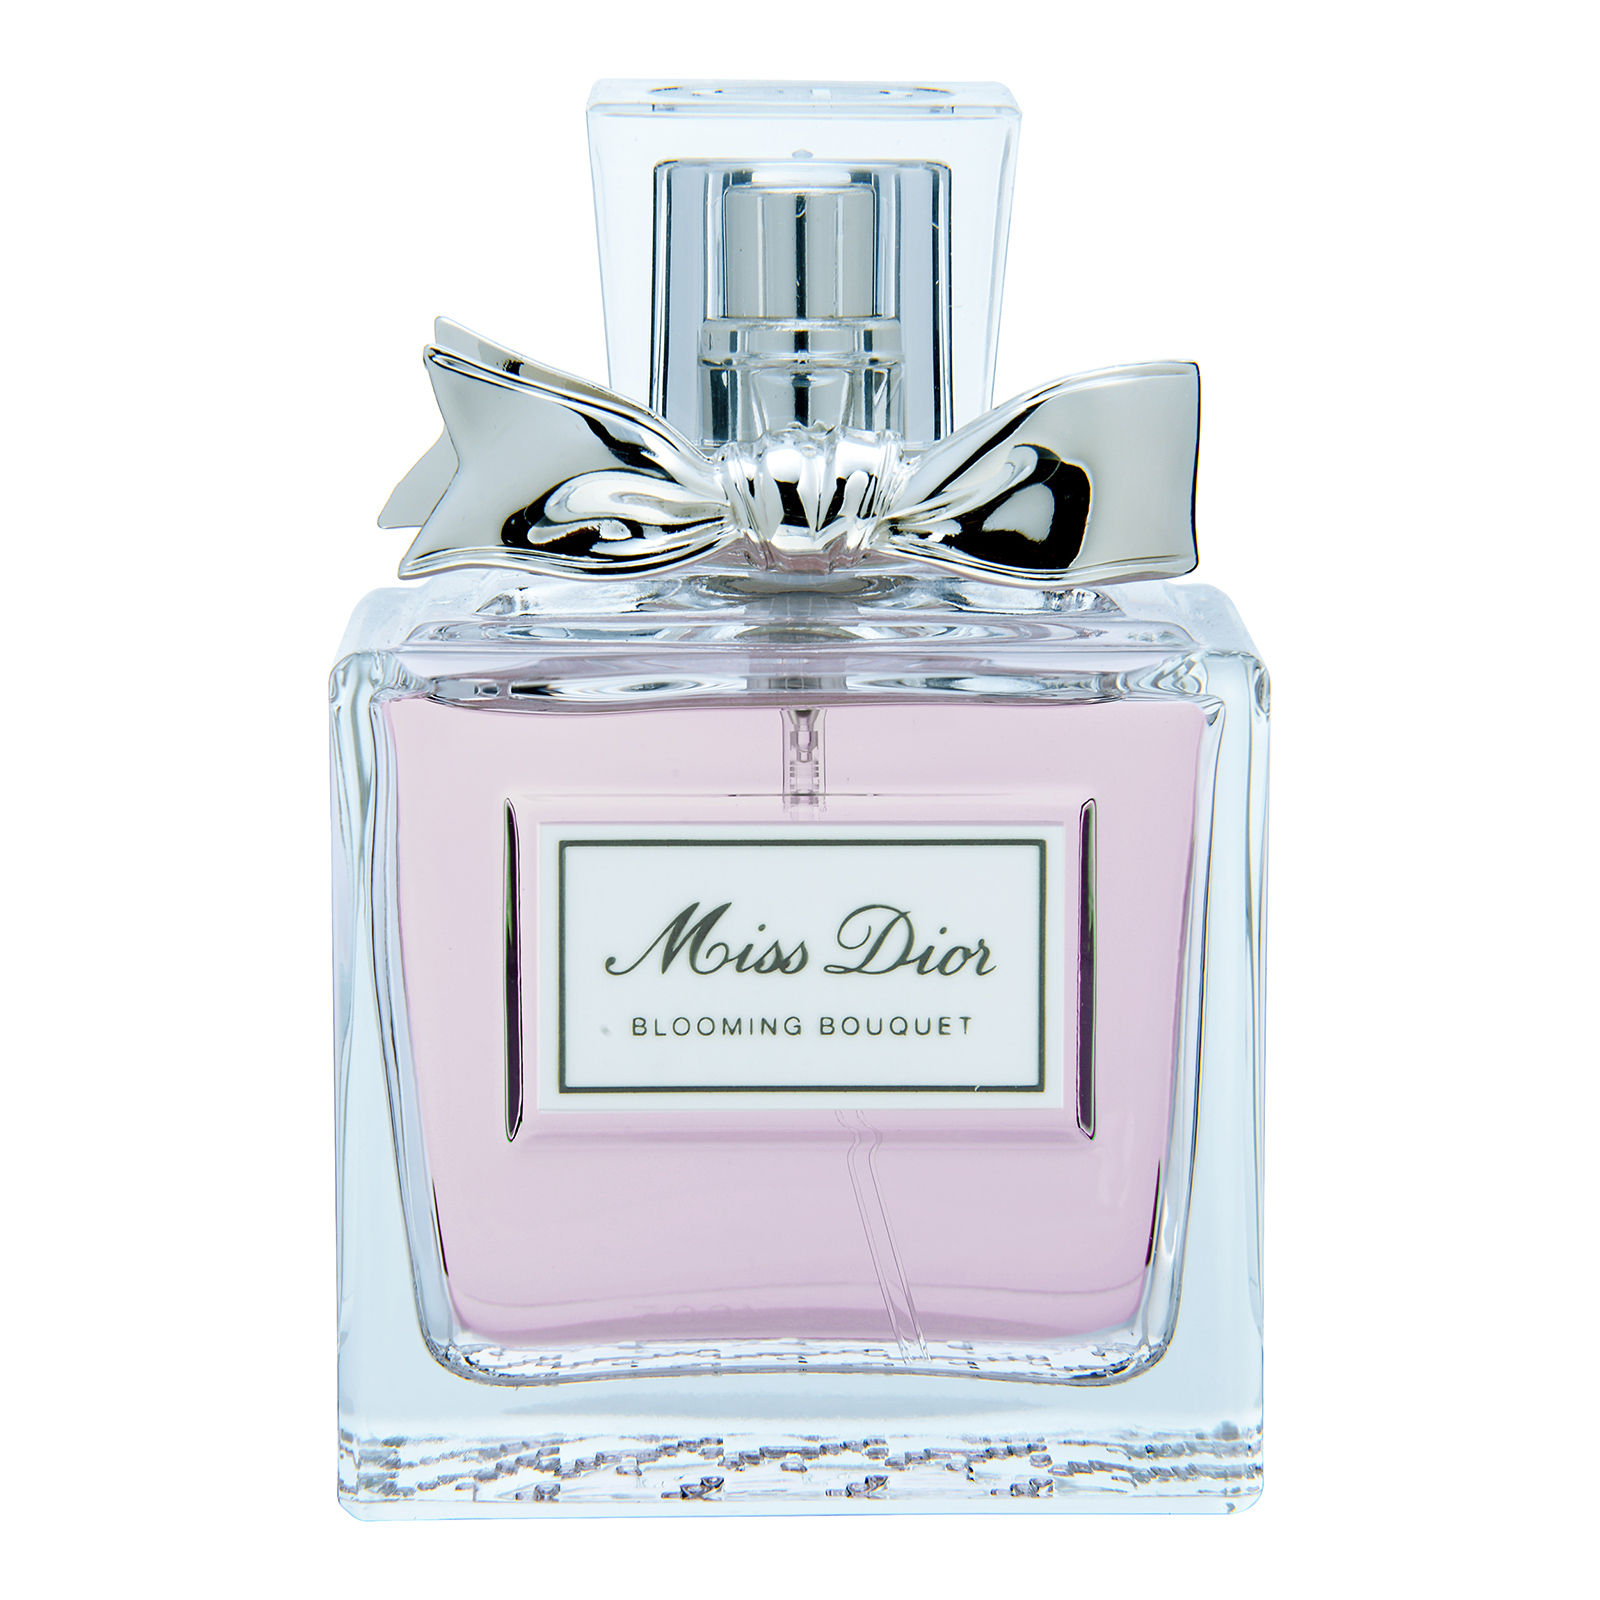 Christian Dior Miss Dior Blooming Bouquet Eau de Toilette 1.7oz, 50ml CDF0100092-000-00